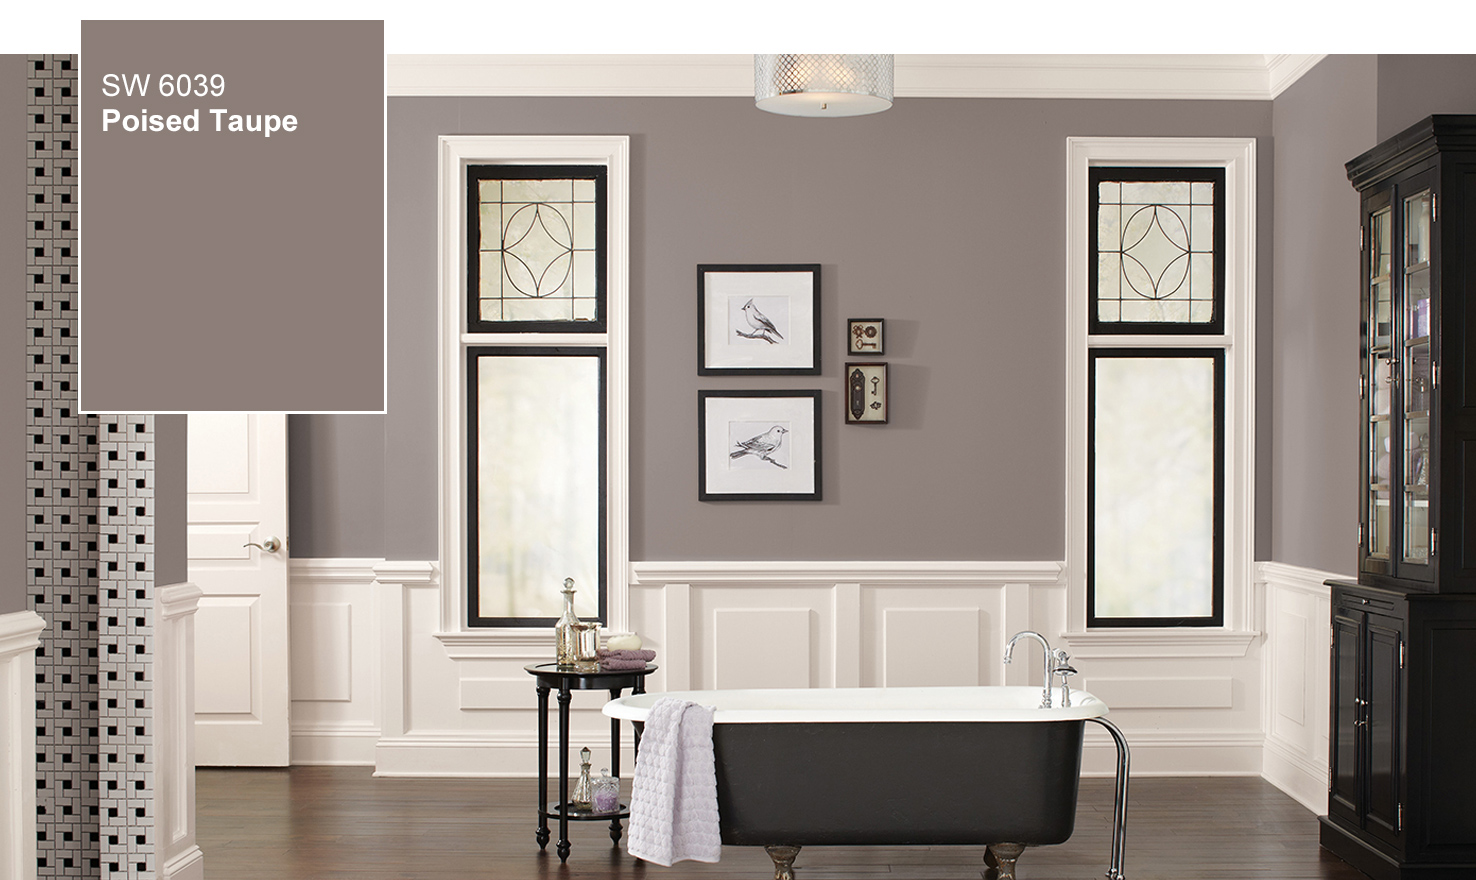 Formidable Sw Color Brown Cabinets Colors That Go Year Poised Taupe Colors That Go Year 2017  sc 1 th 225 & Admirable Brown Shorts Baby What Colors Go Decorating By Donna ...